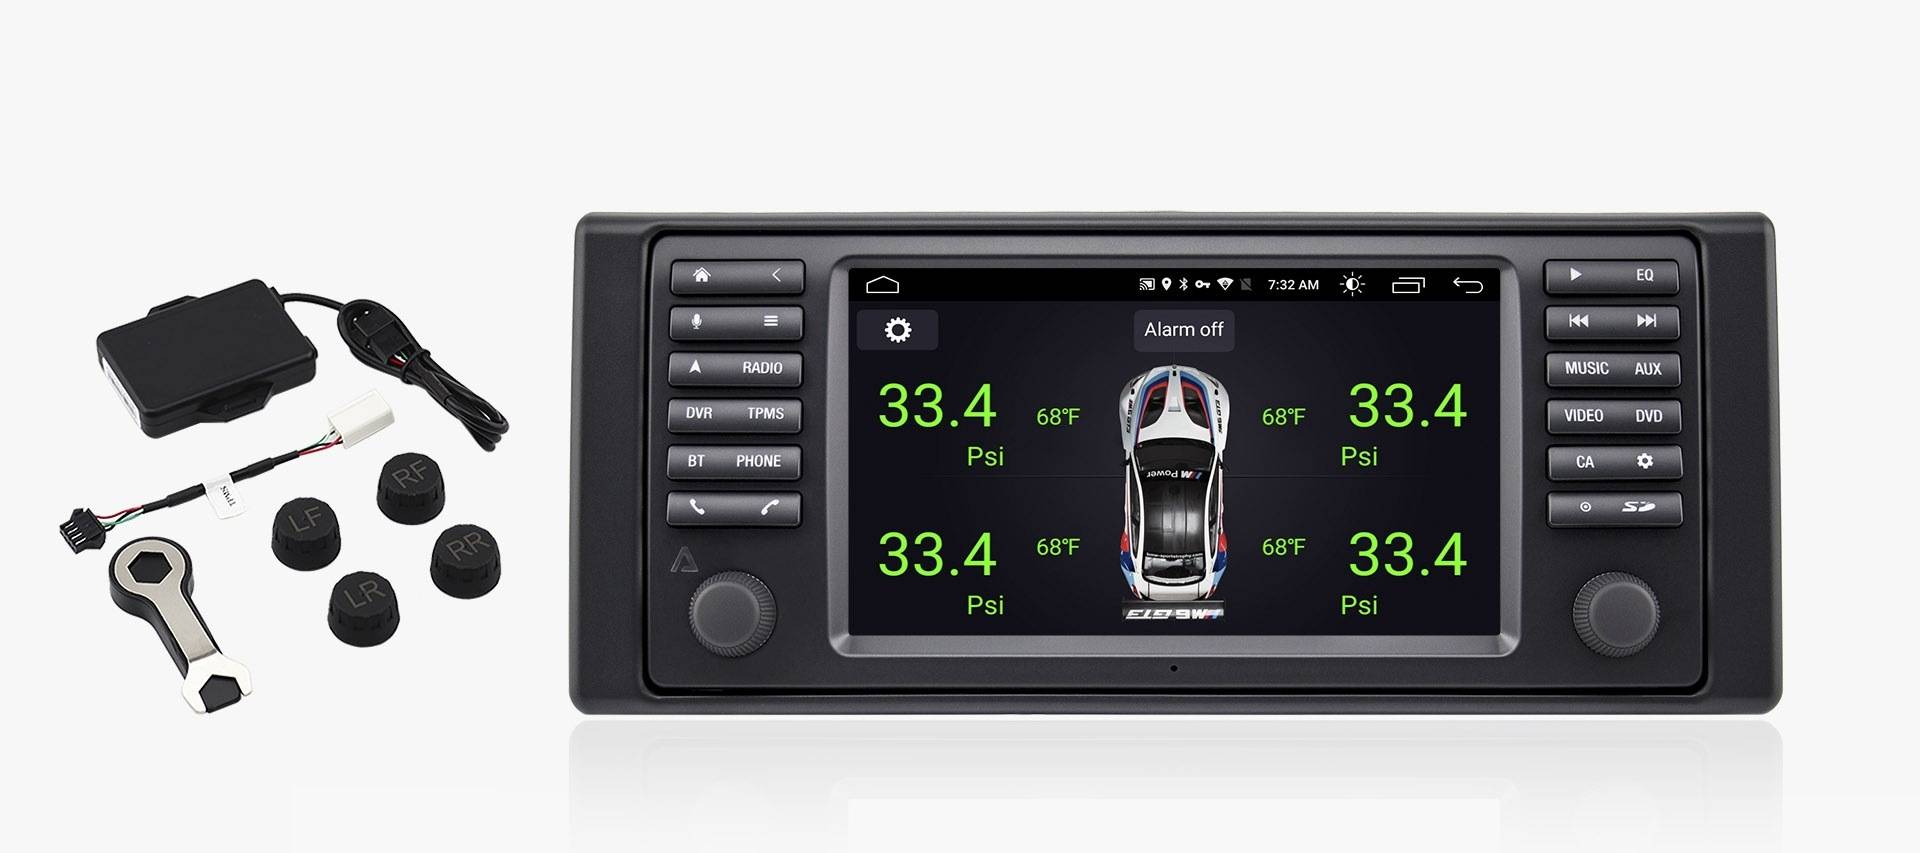 Avant 3 For E39 Bmw 5 Series Android Multimedia Navigation System Backup Camera Wiring Also Diagram Of Car Stereo Harness Radio Requires Optional Tpms Kit